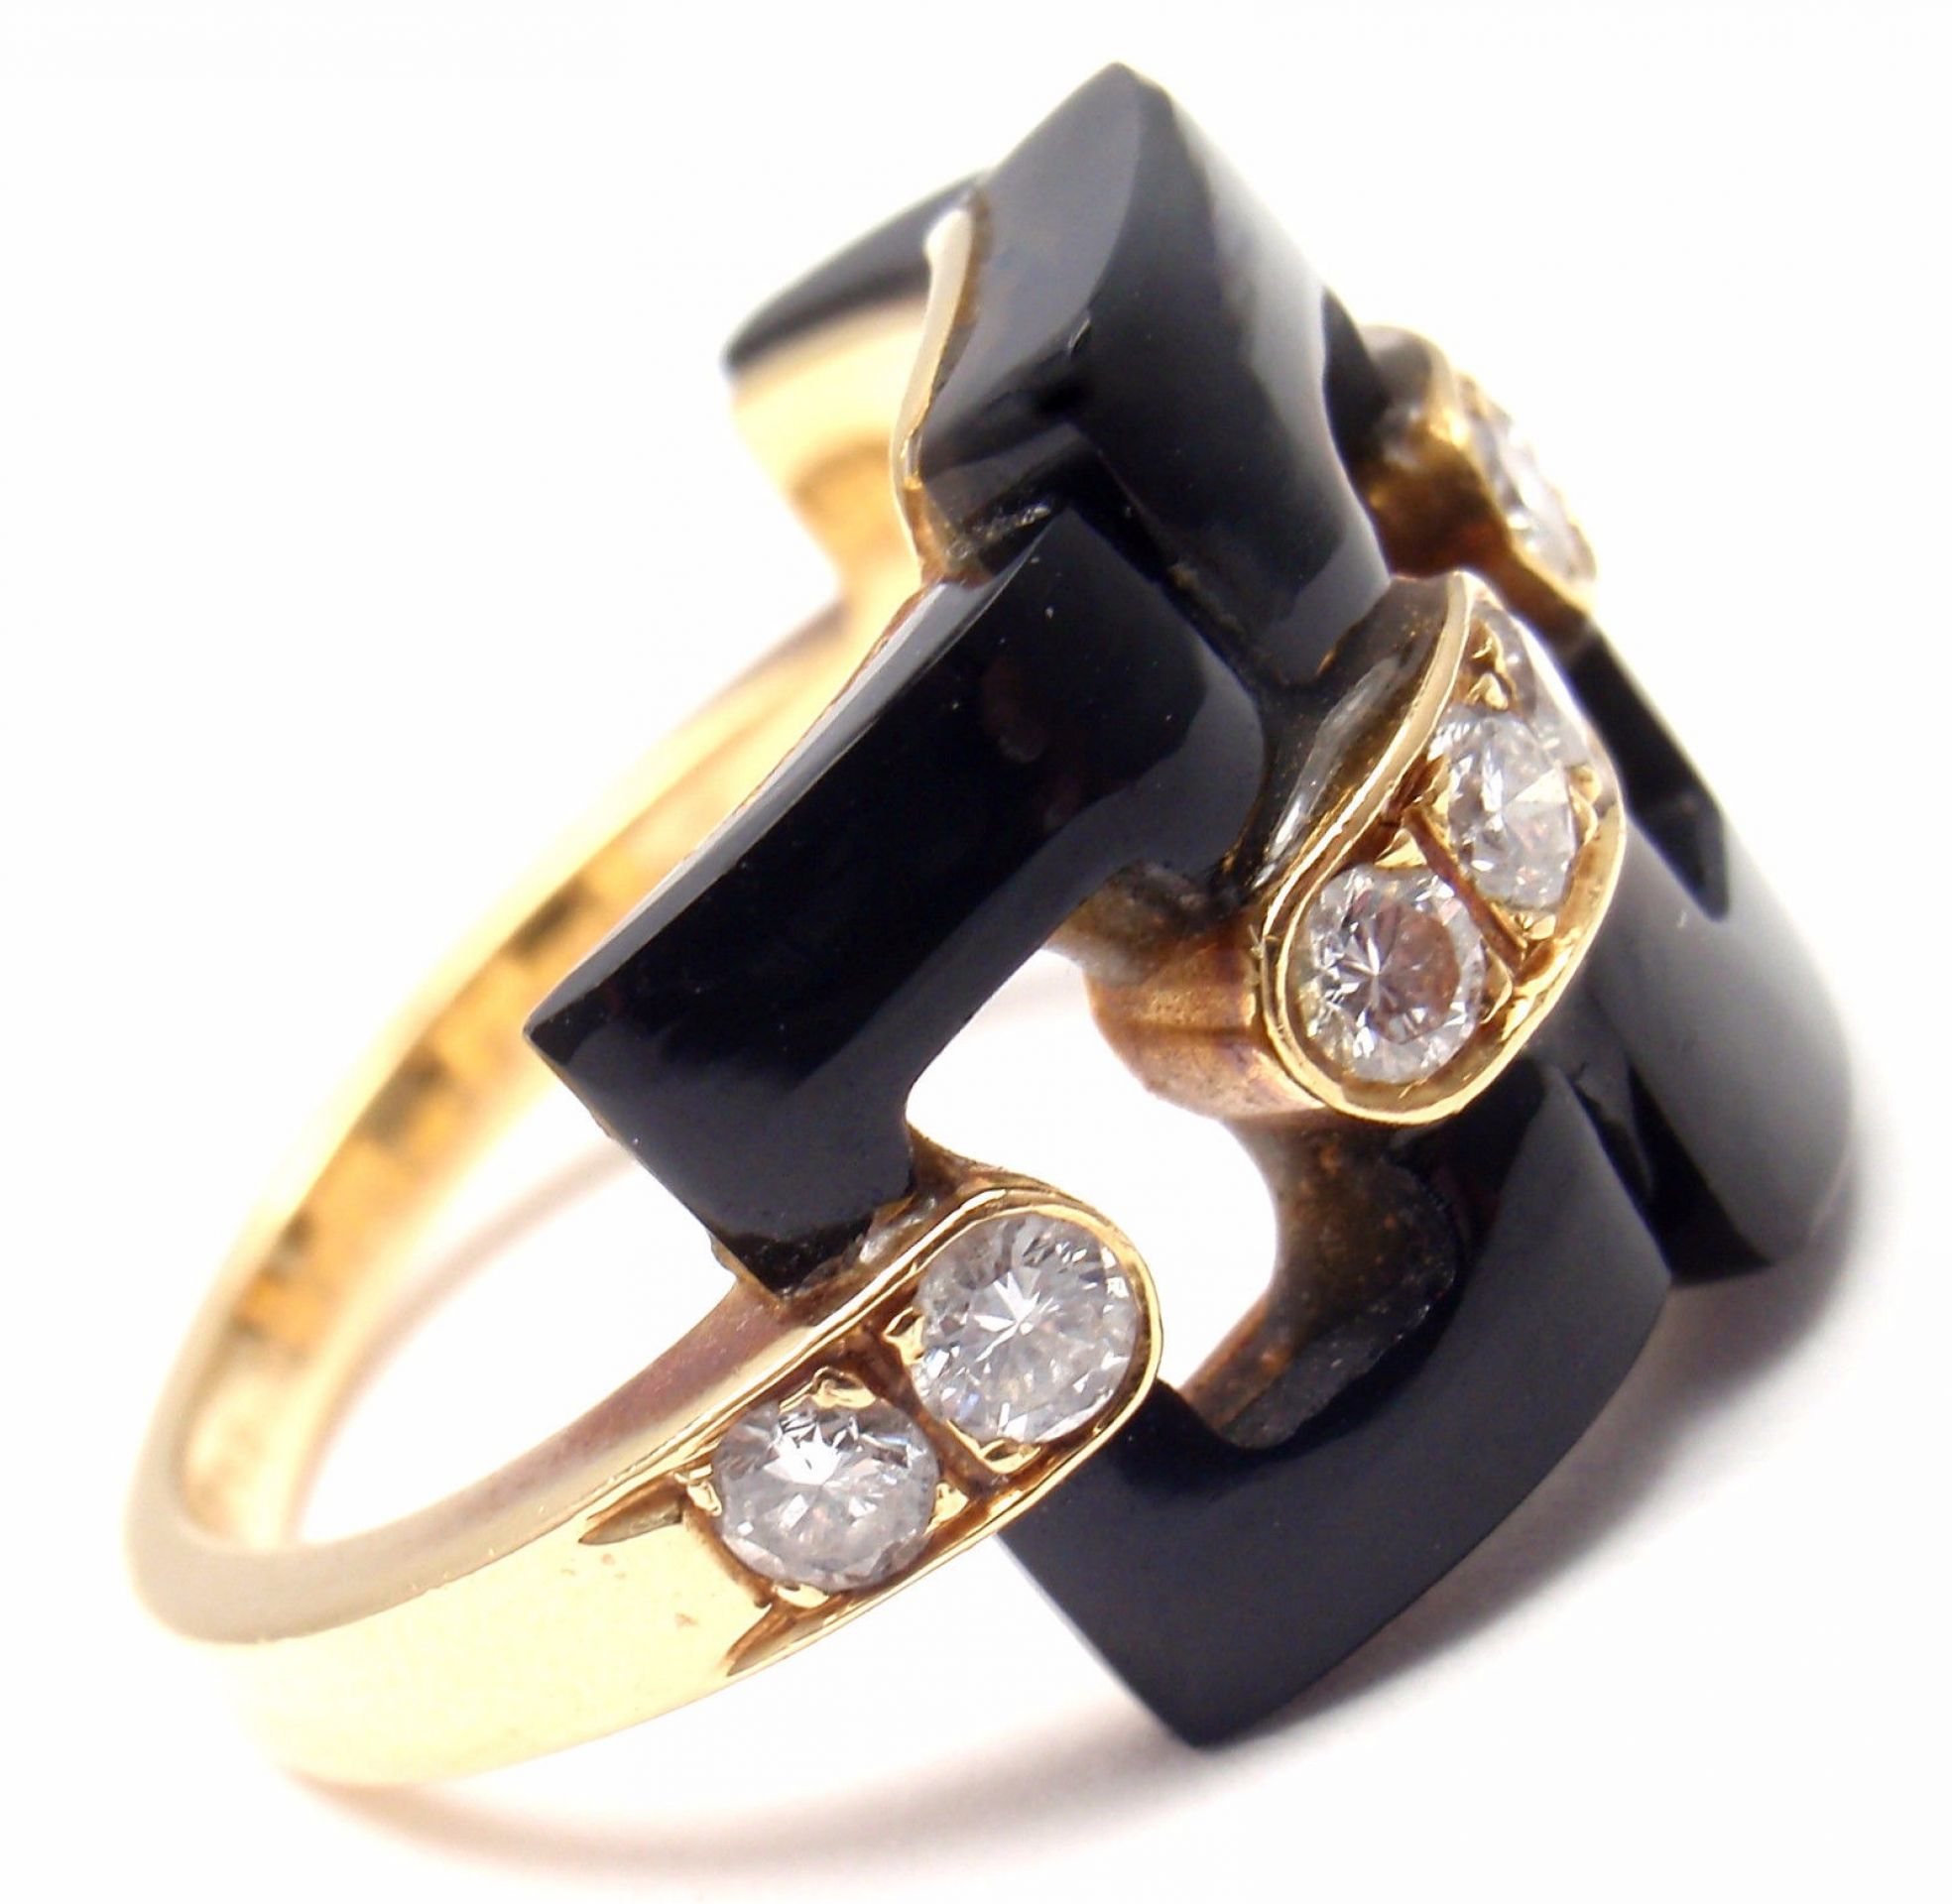 Authentic! Vintage VAN CLEEF & ARPELS 18k Yellow Gold Diamond Black Onyx Ring